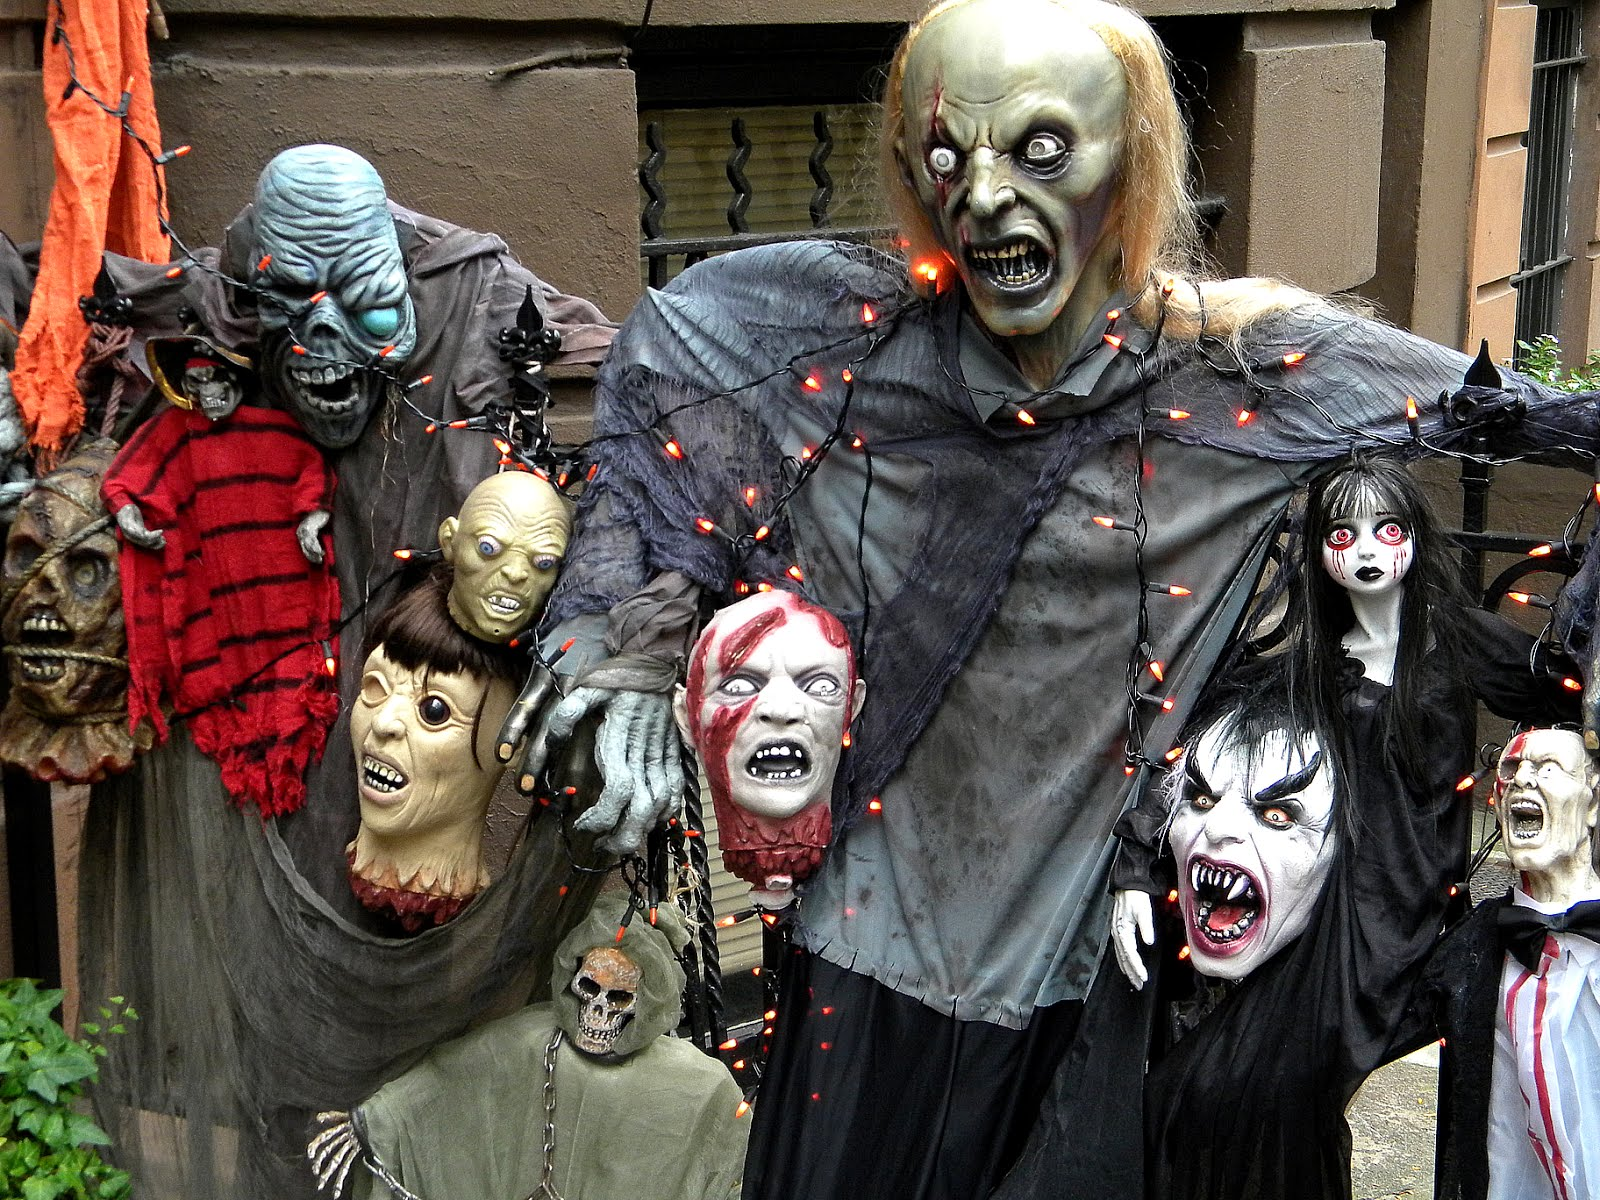 Happy Halloween Friends Matrix zombies, ghouls and demons